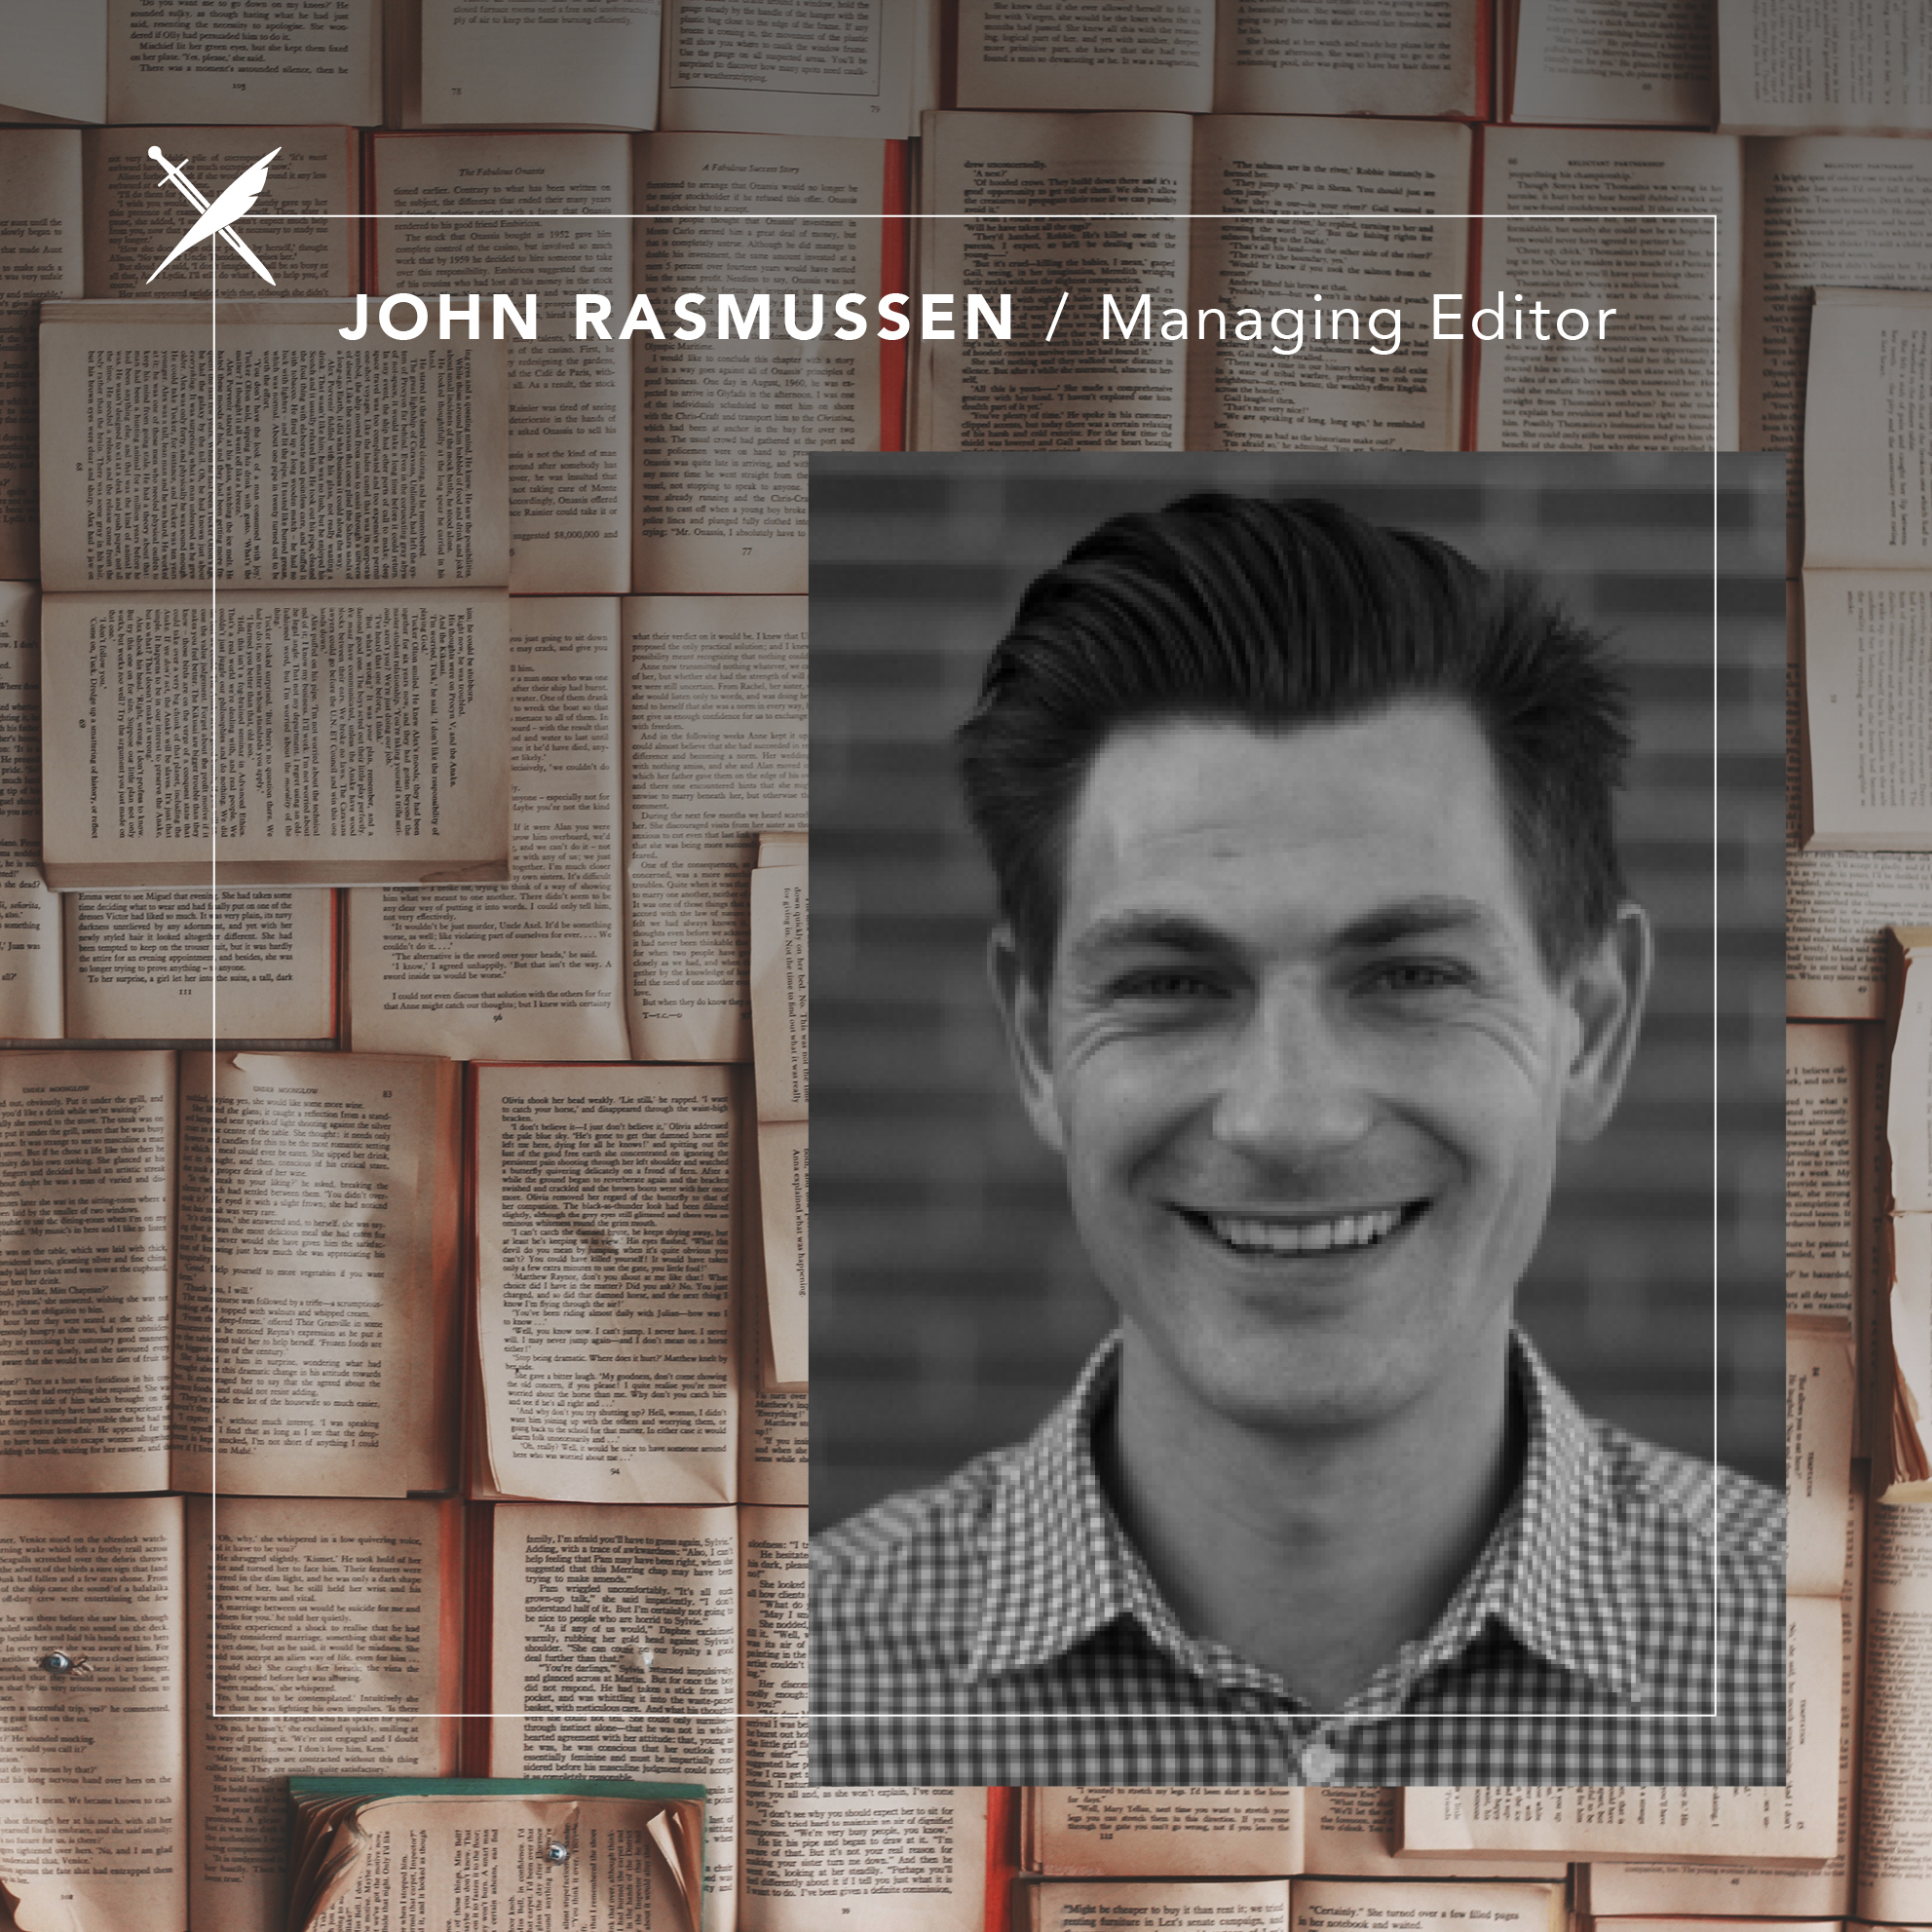 John Rasmussen — Co-Founder/Managing Editor